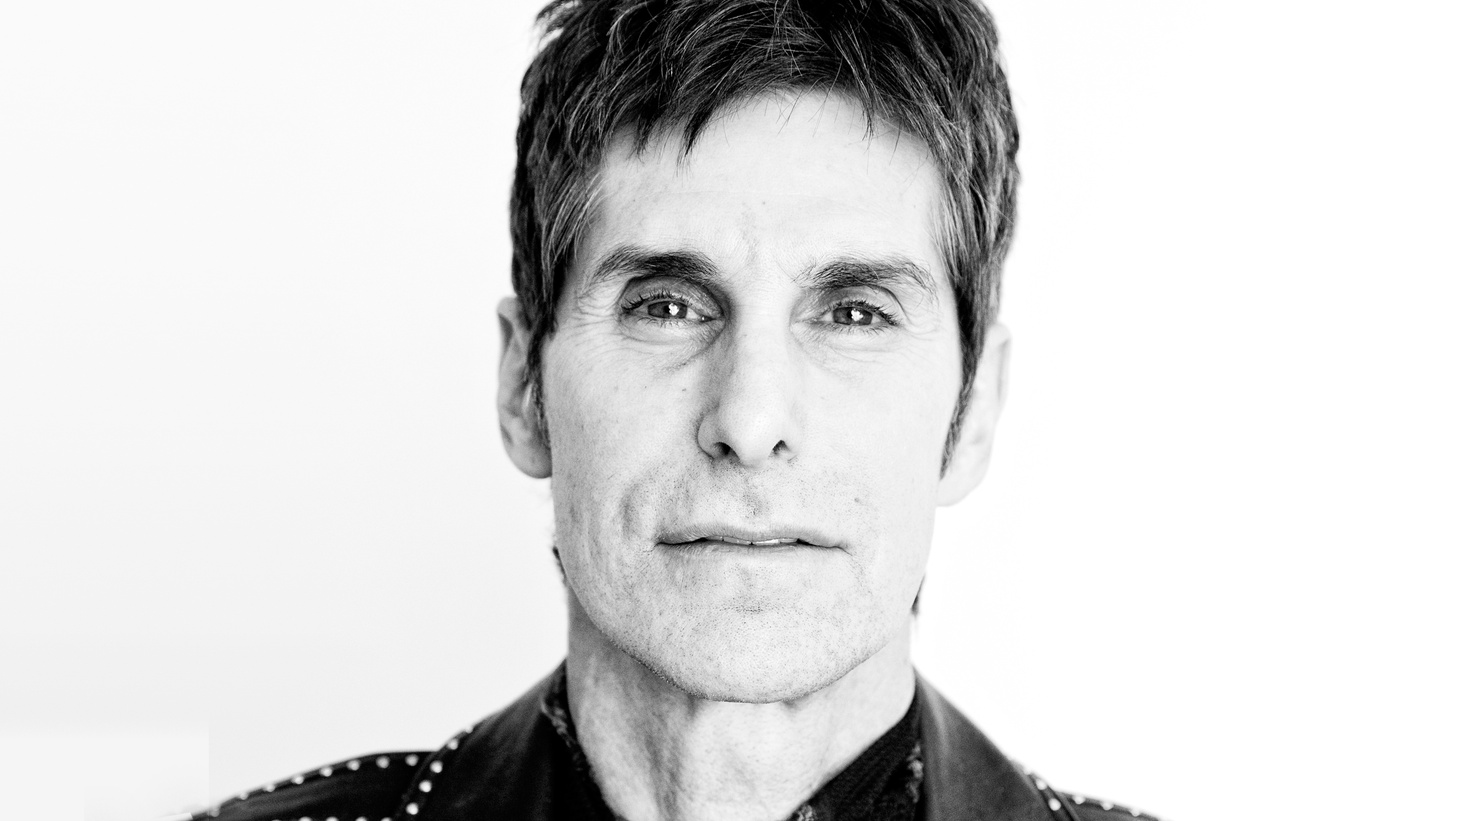 Perry Farrell joins us at 10:05am to celebrate the 25-year anniversary of Lollapalooza.